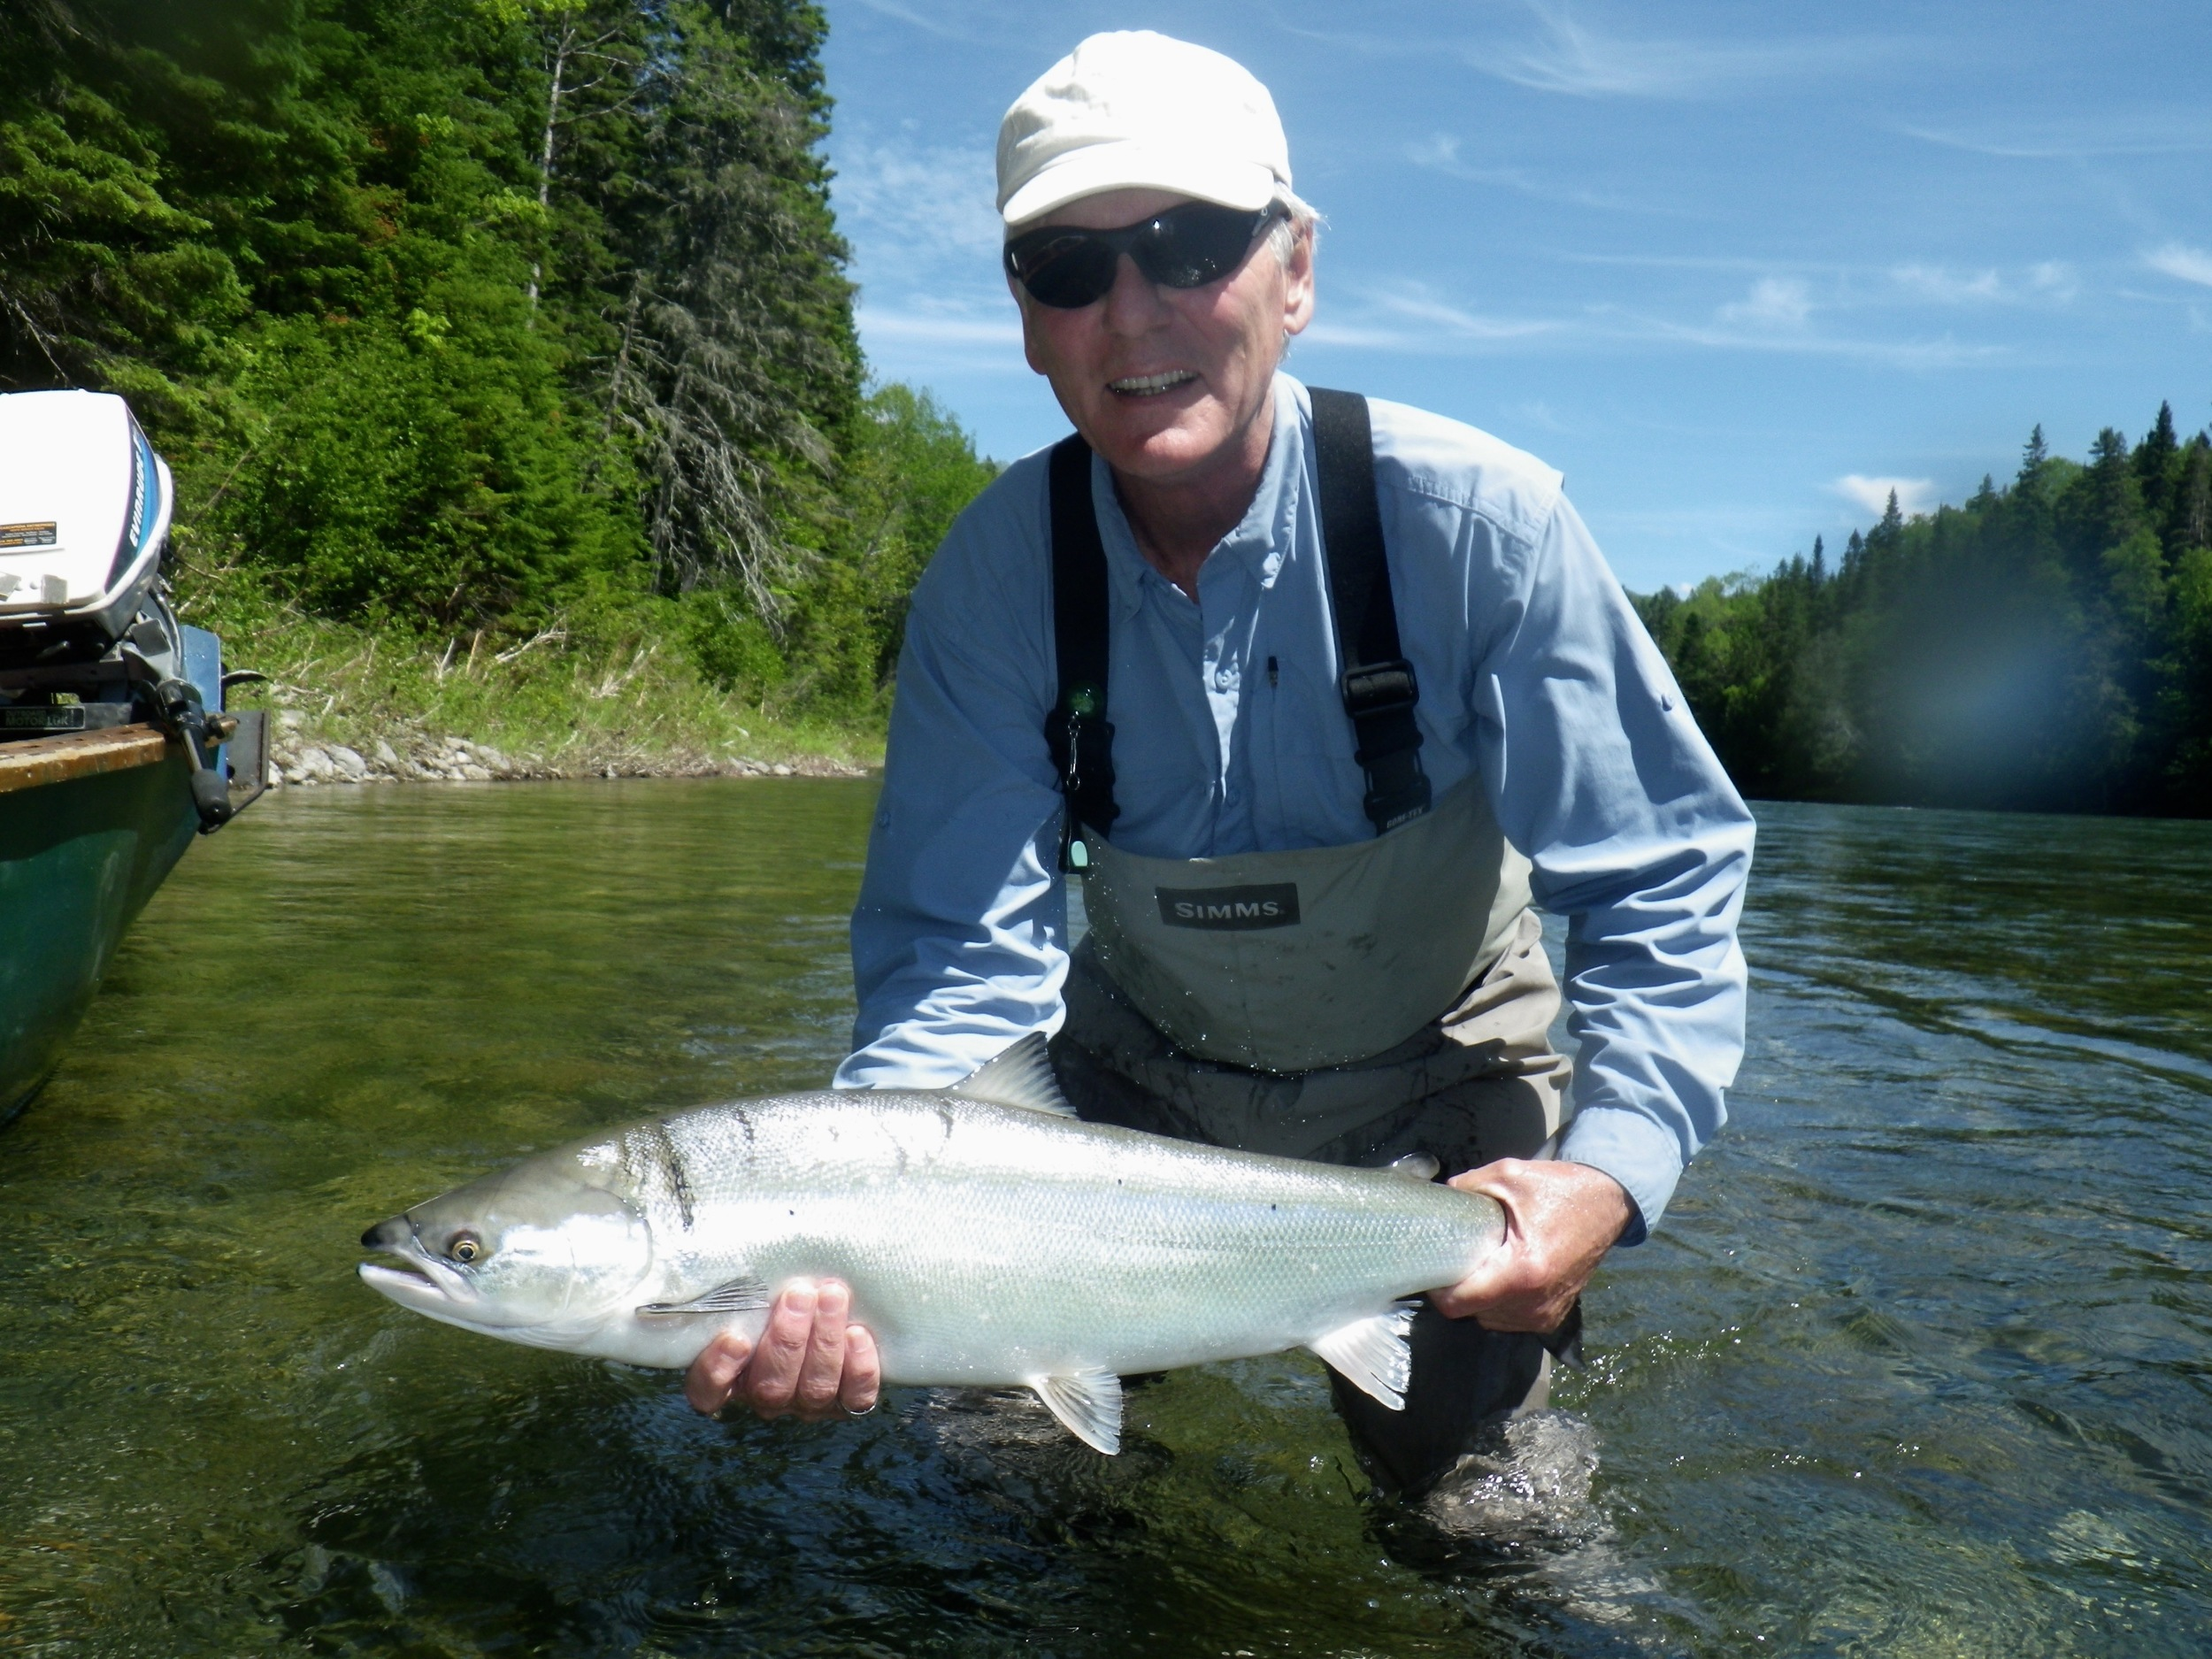 Rick Ormstom with his first salmon of the year, way to go Rick!